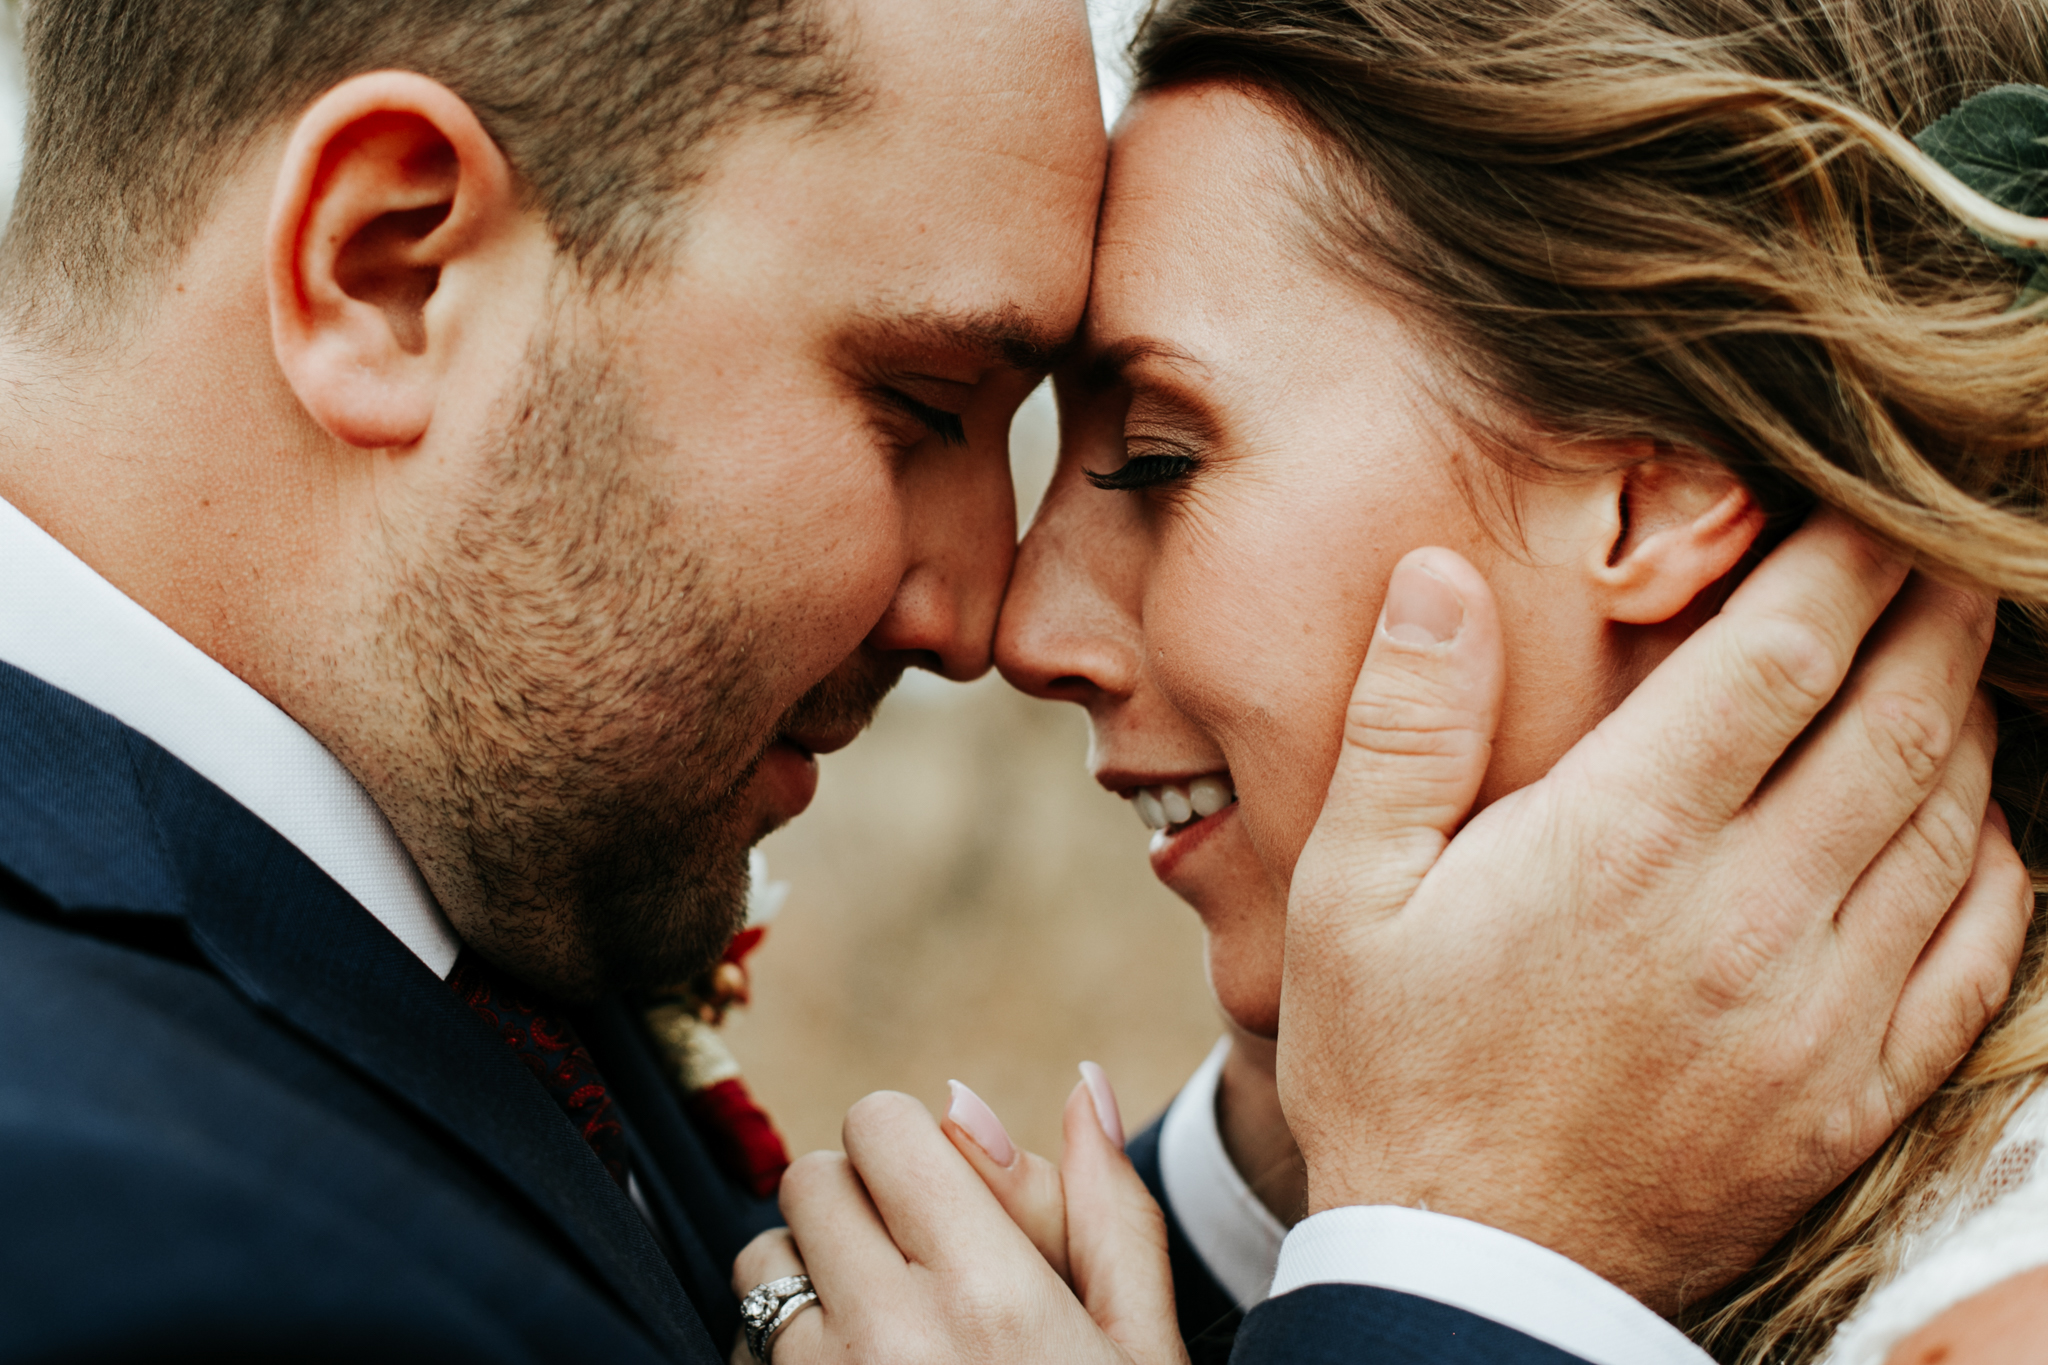 lethbridge-photographer-love-and-be-loved-photography-designed-to-dwell-wedding-katie-kelly-photo-image-picture-42.jpg